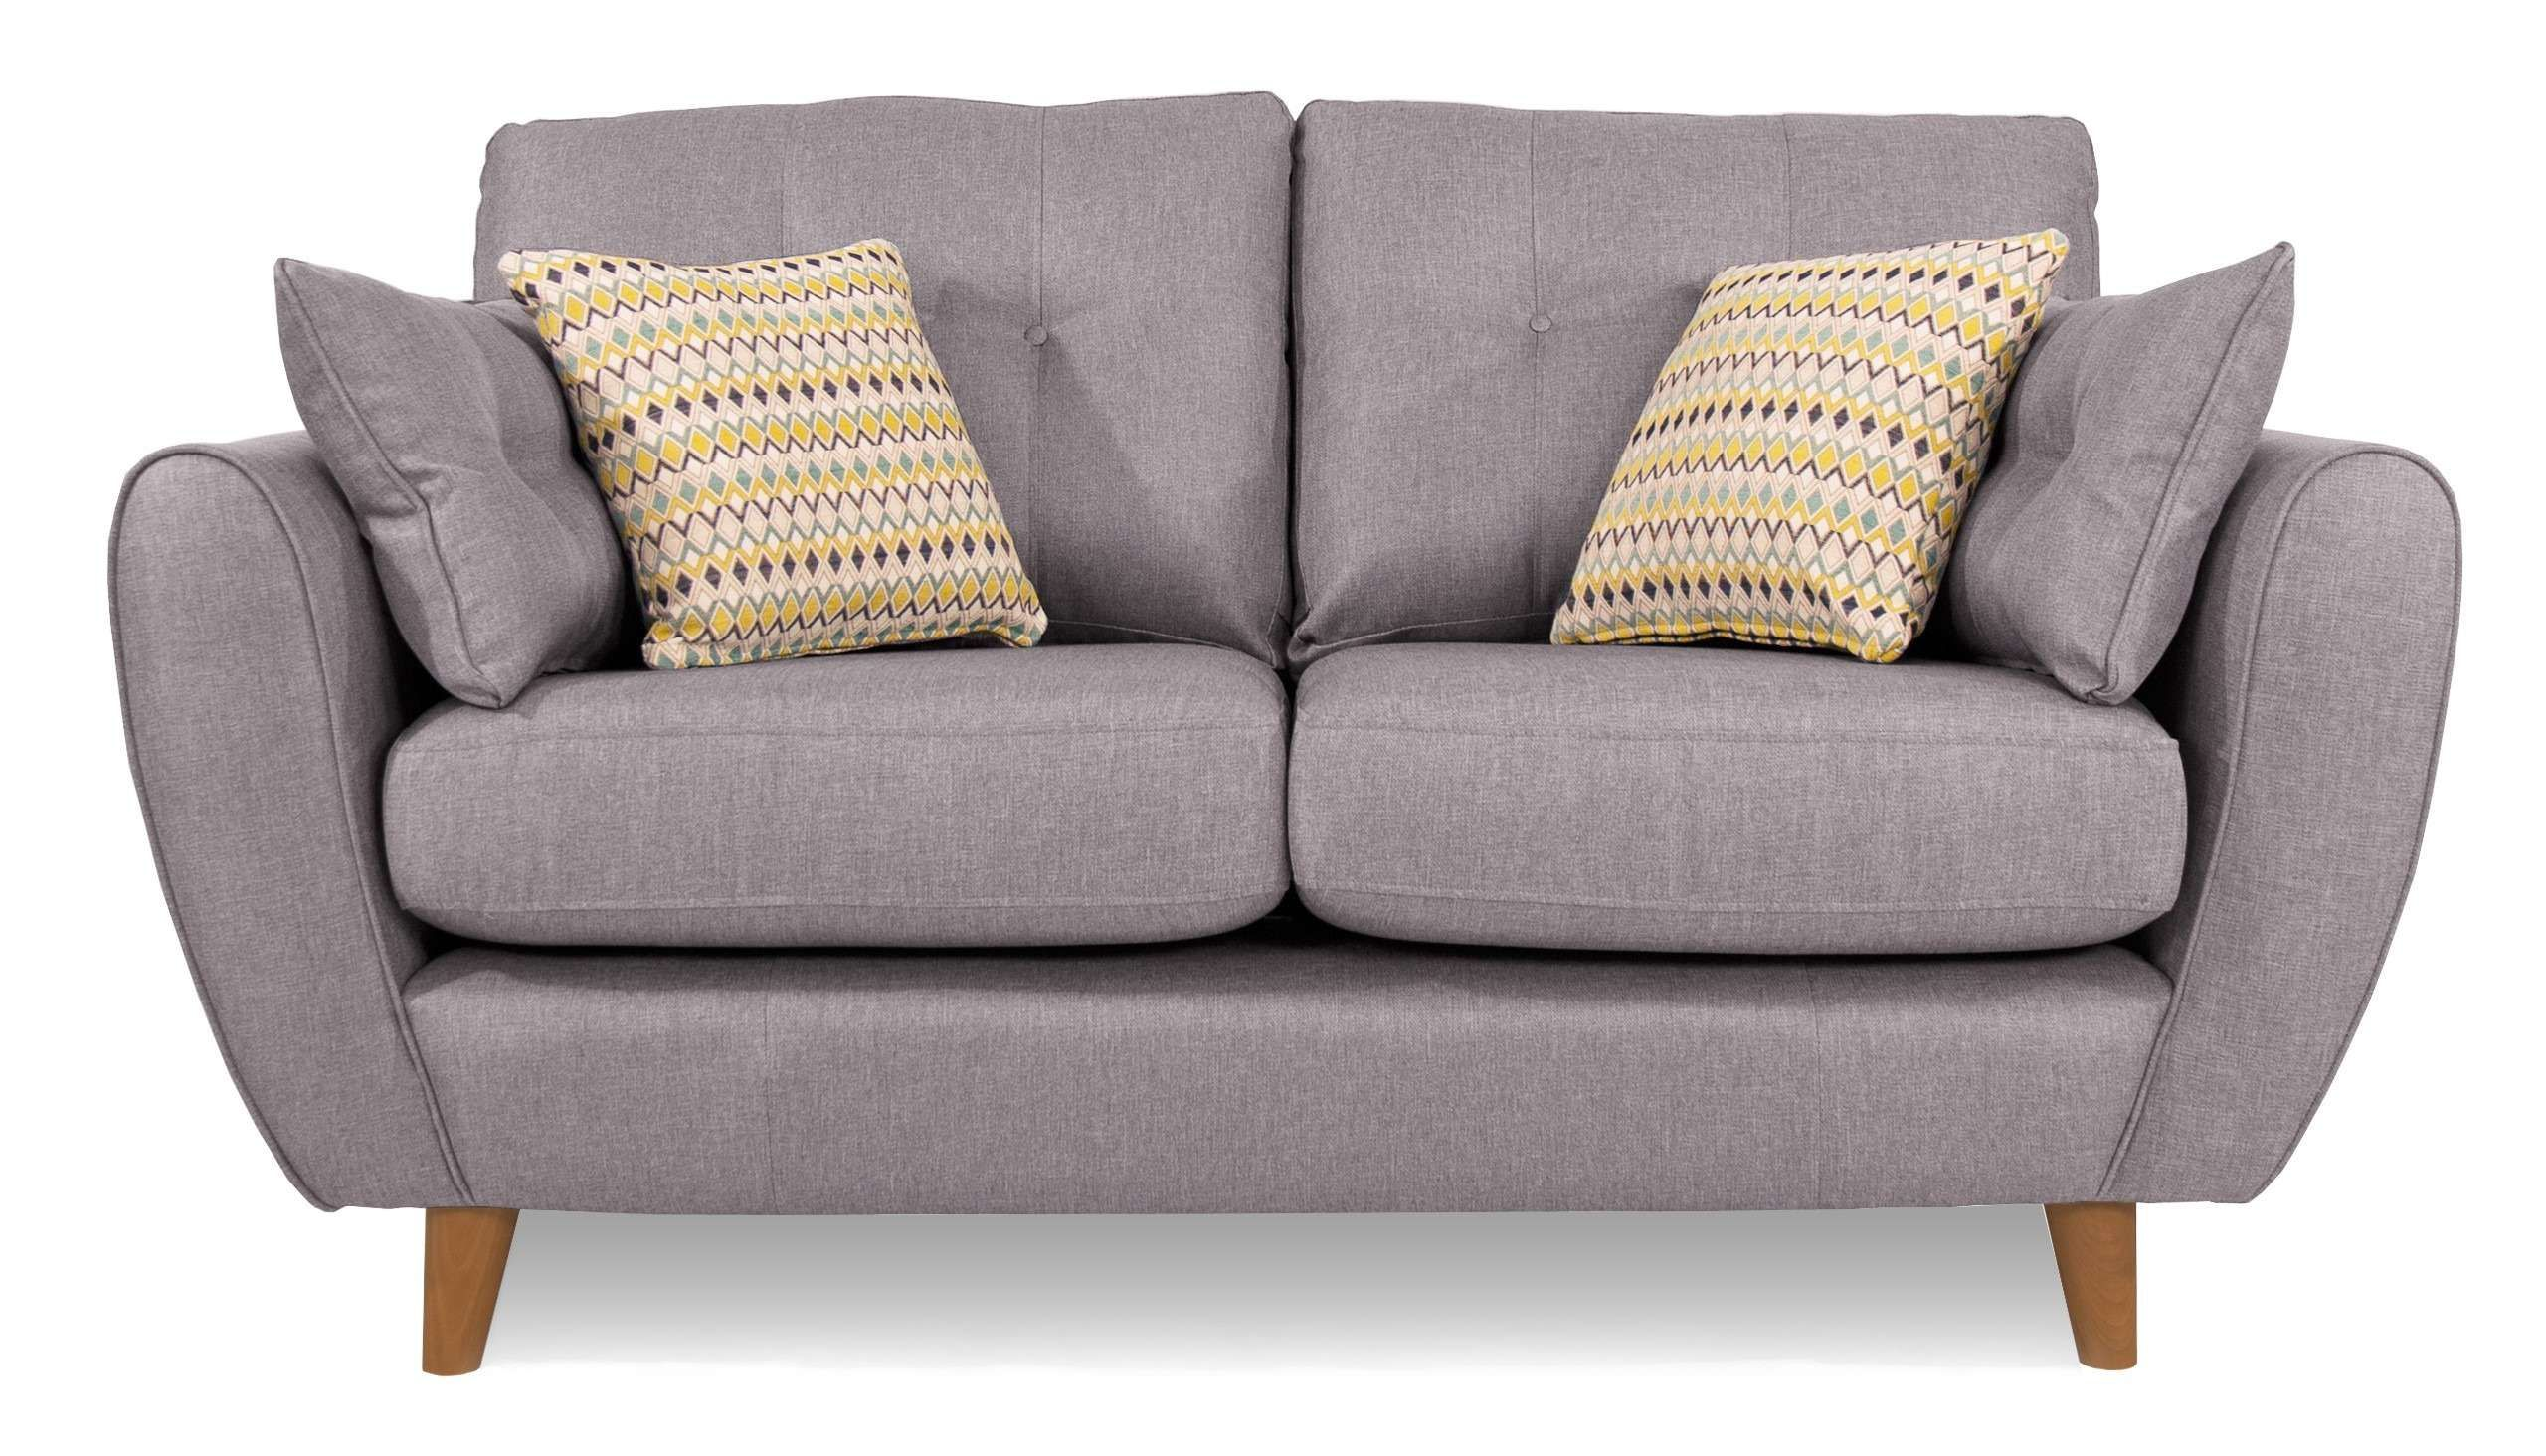 24 Schöne Intex Queen Sleeper Sofa Sofamodelle Info Couch Möbel Sofa Big Sofa Mit Schlaffunktion